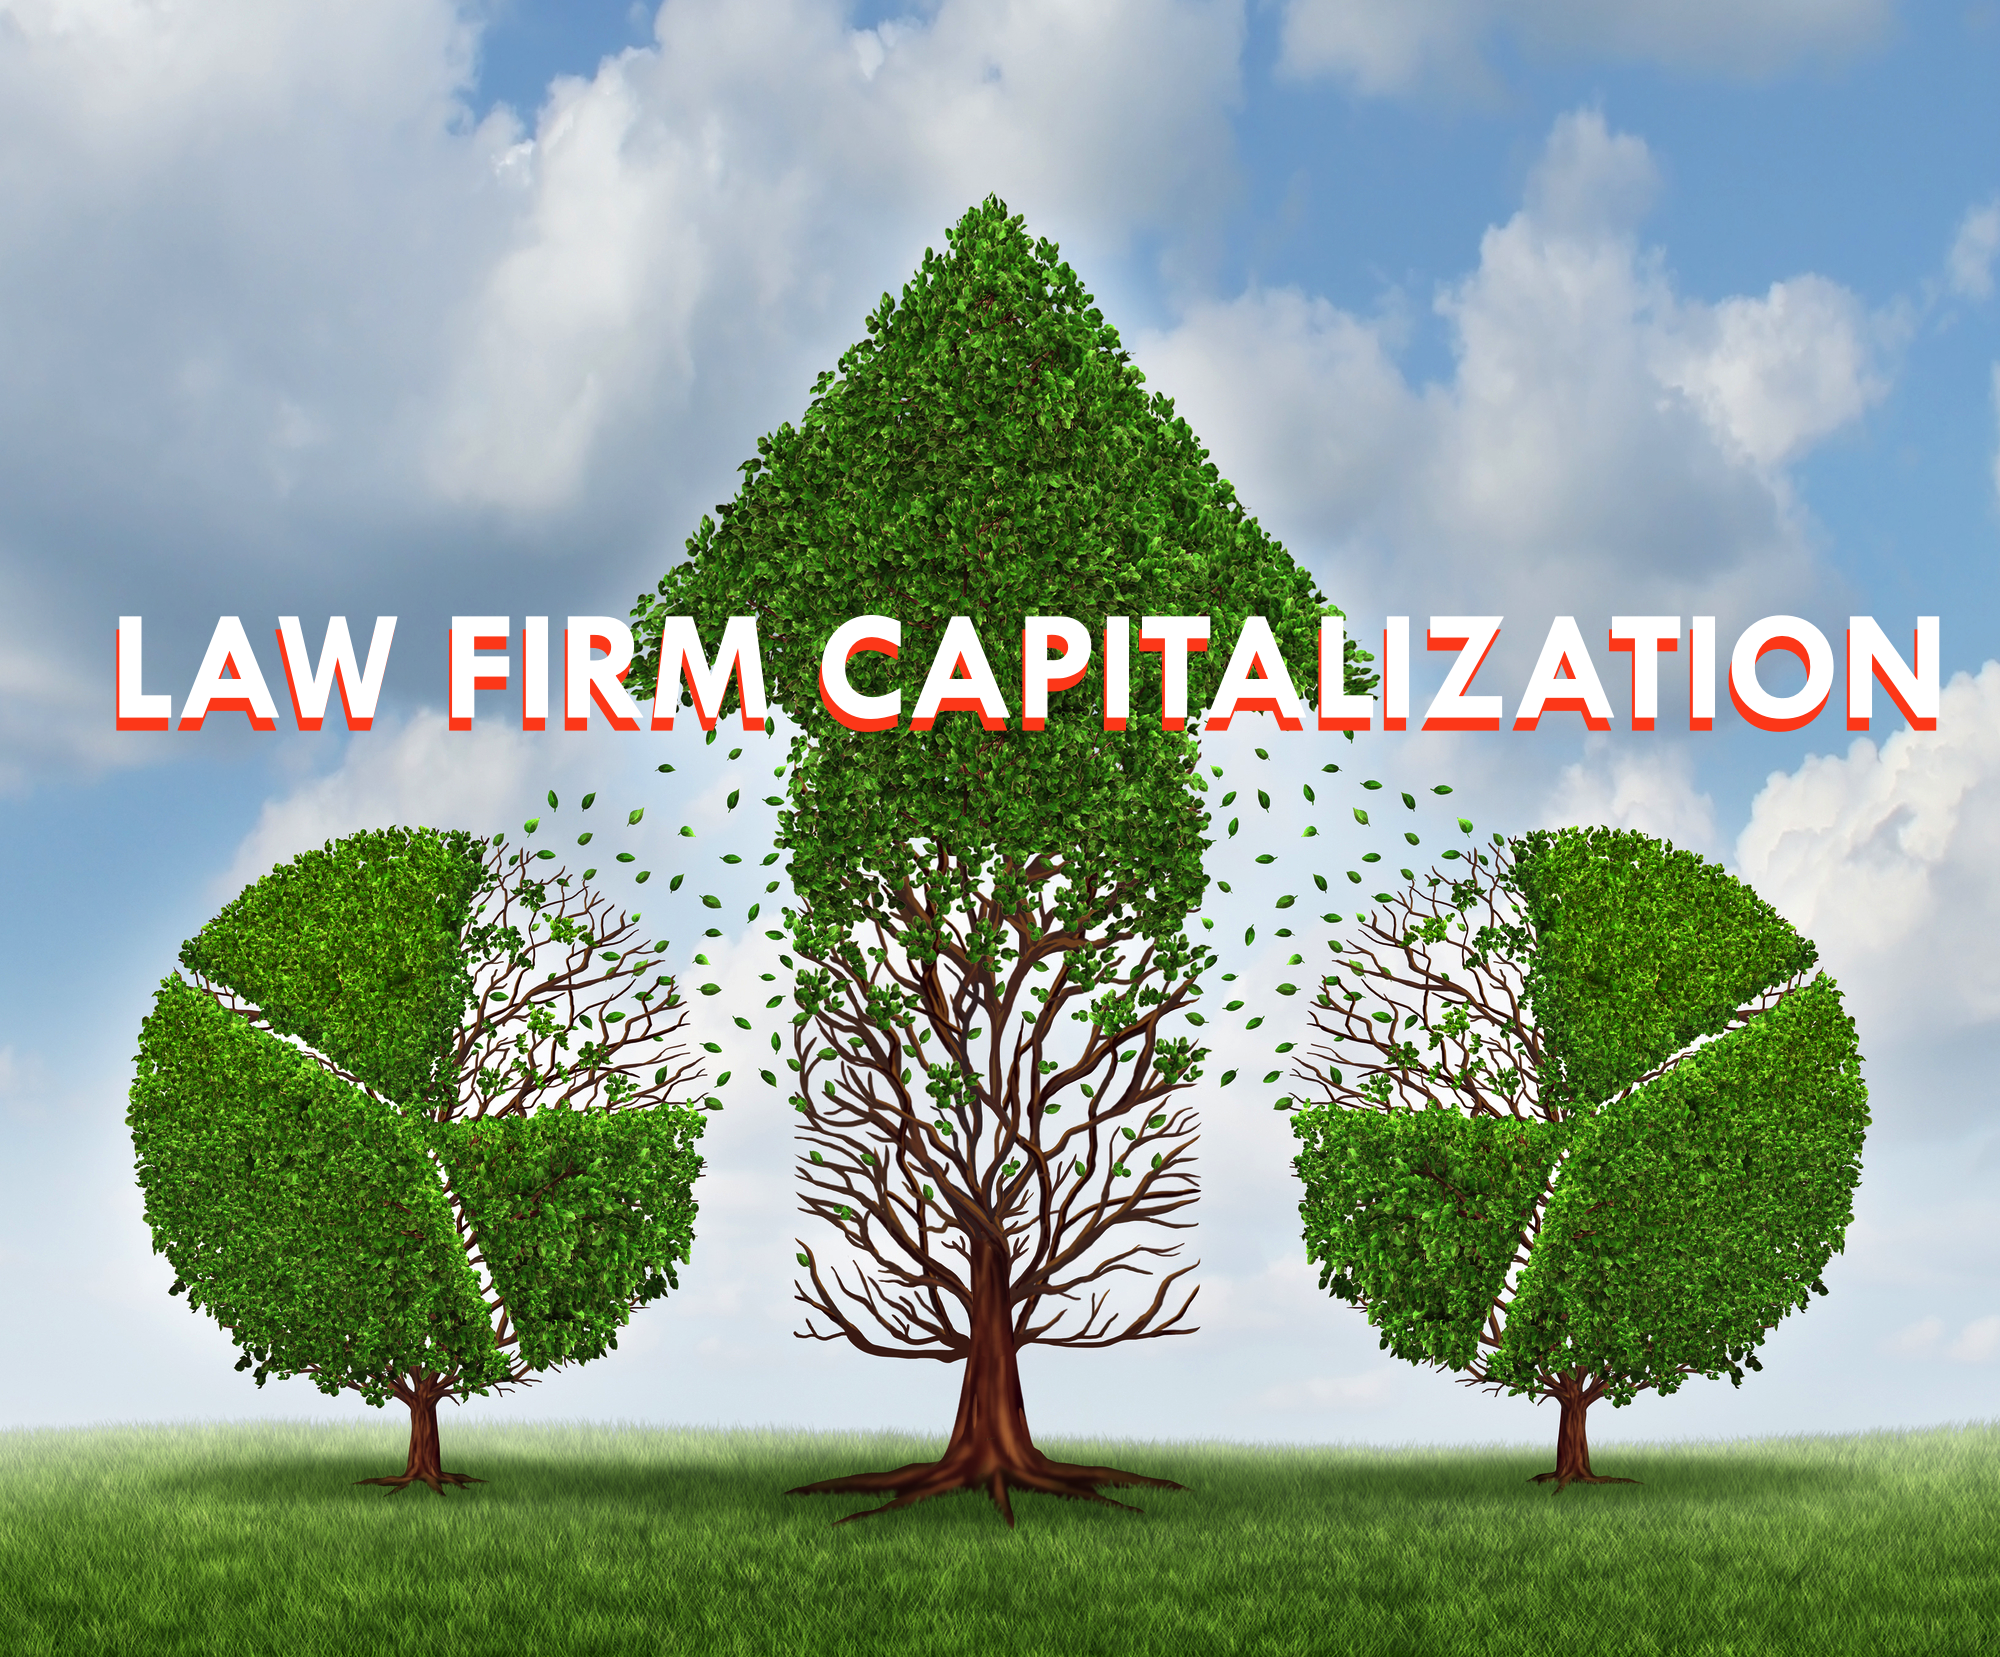 Image_Law_Firm_Capitalization